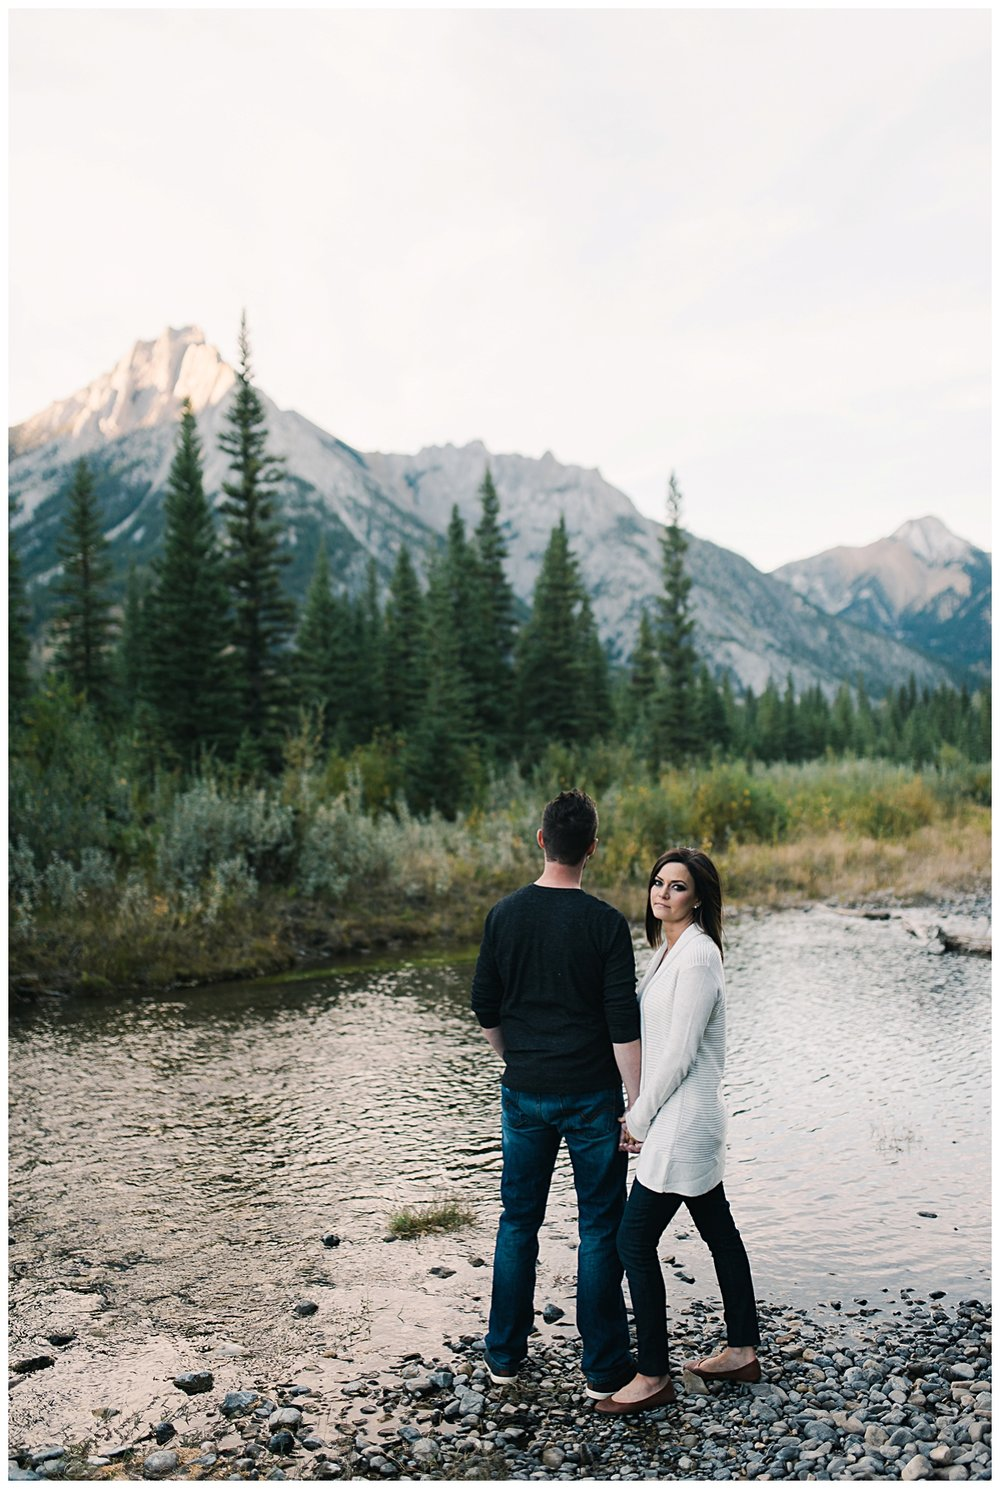 kananaskis_engagement (19 of 20).jpg